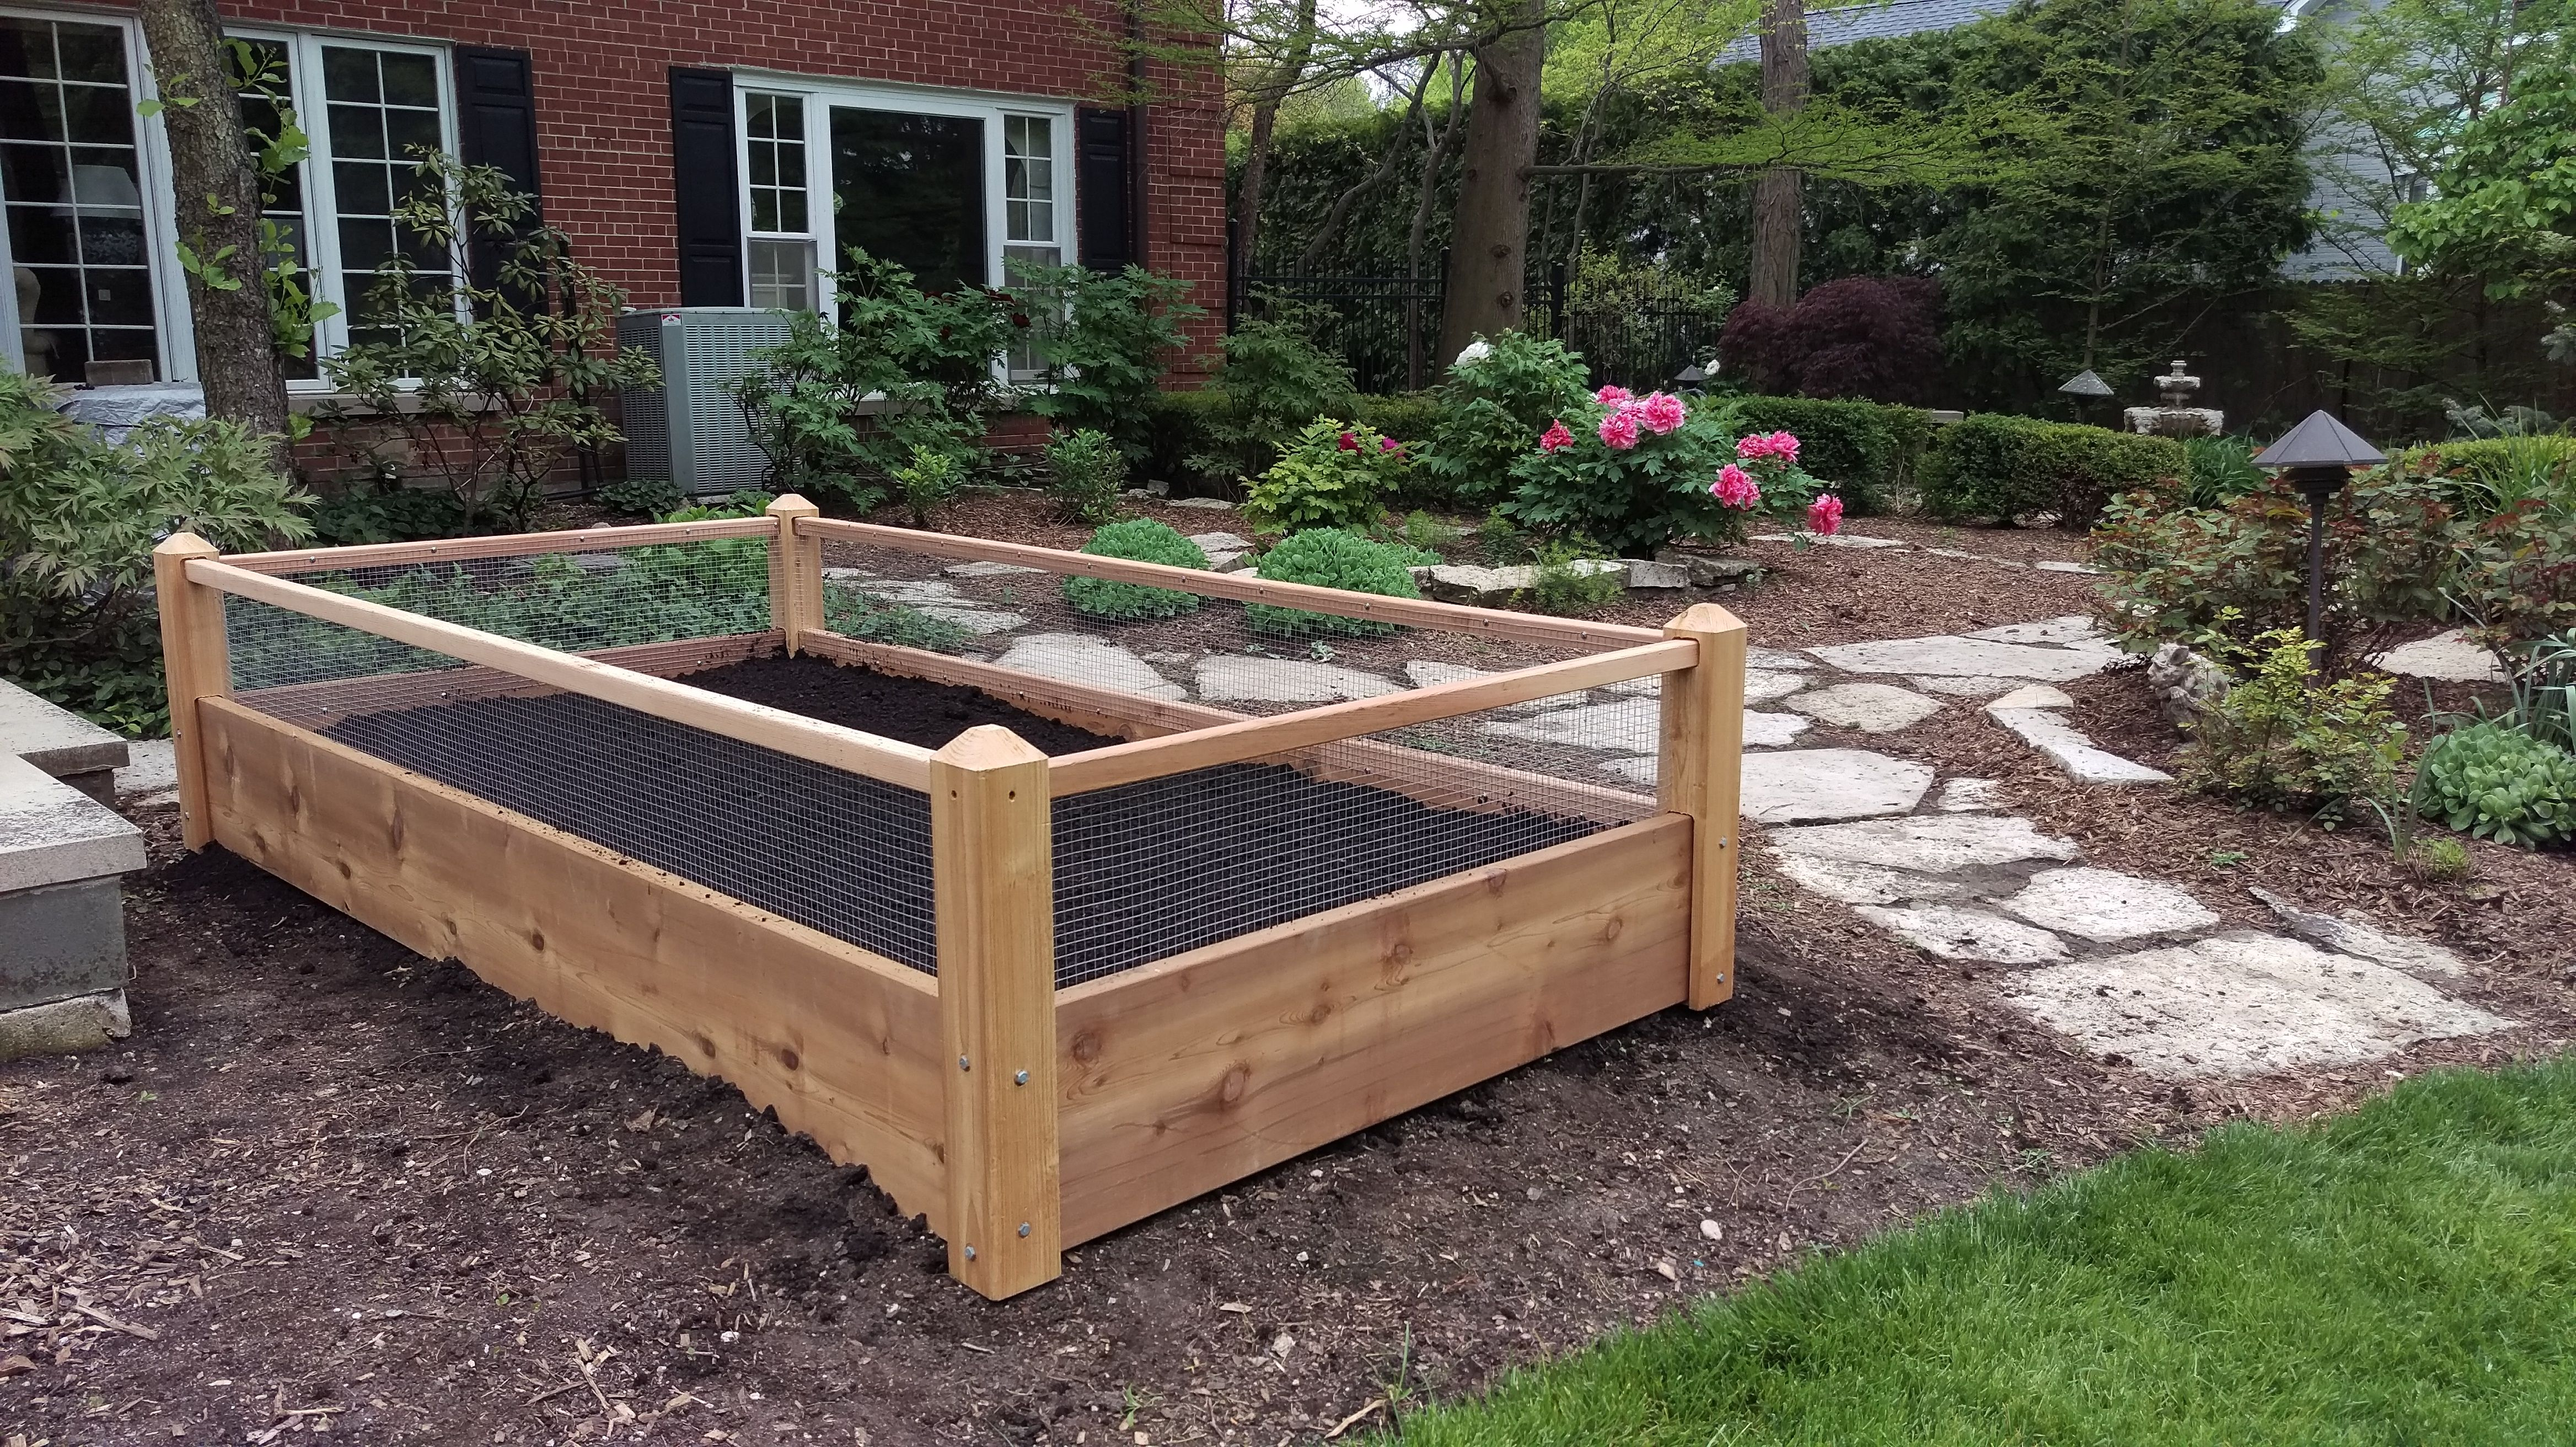 3x8x2 Raised Bed Garden. You Can Choose From 3 Types Of Wood. Untreated Pine